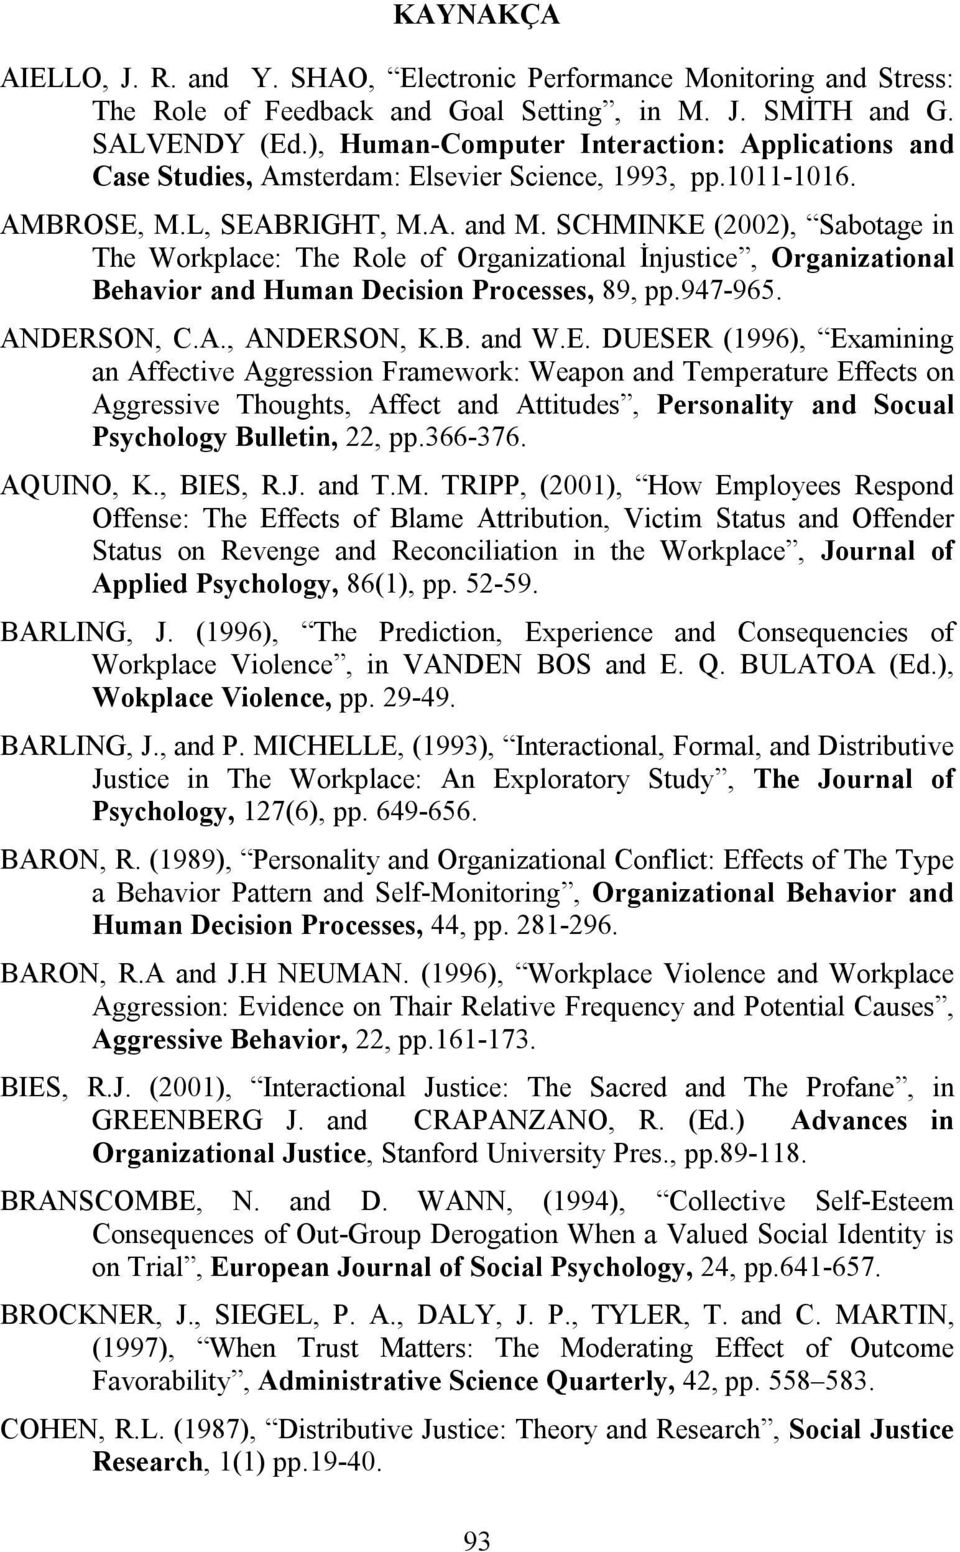 SCHMINKE (2002), Sabotage in The Workplace: The Role of Organizational İnjustice, Organizational Behavior and Human Decision Processes, 89, pp.947-965. ANDERSON, C.A., ANDERSON, K.B. and W.E. DUESER (1996), Examining an Affective Aggression Framework: Weapon and Temperature Effects on Aggressive Thoughts, Affect and Attitudes, Personality and Socual Psychology Bulletin, 22, pp.